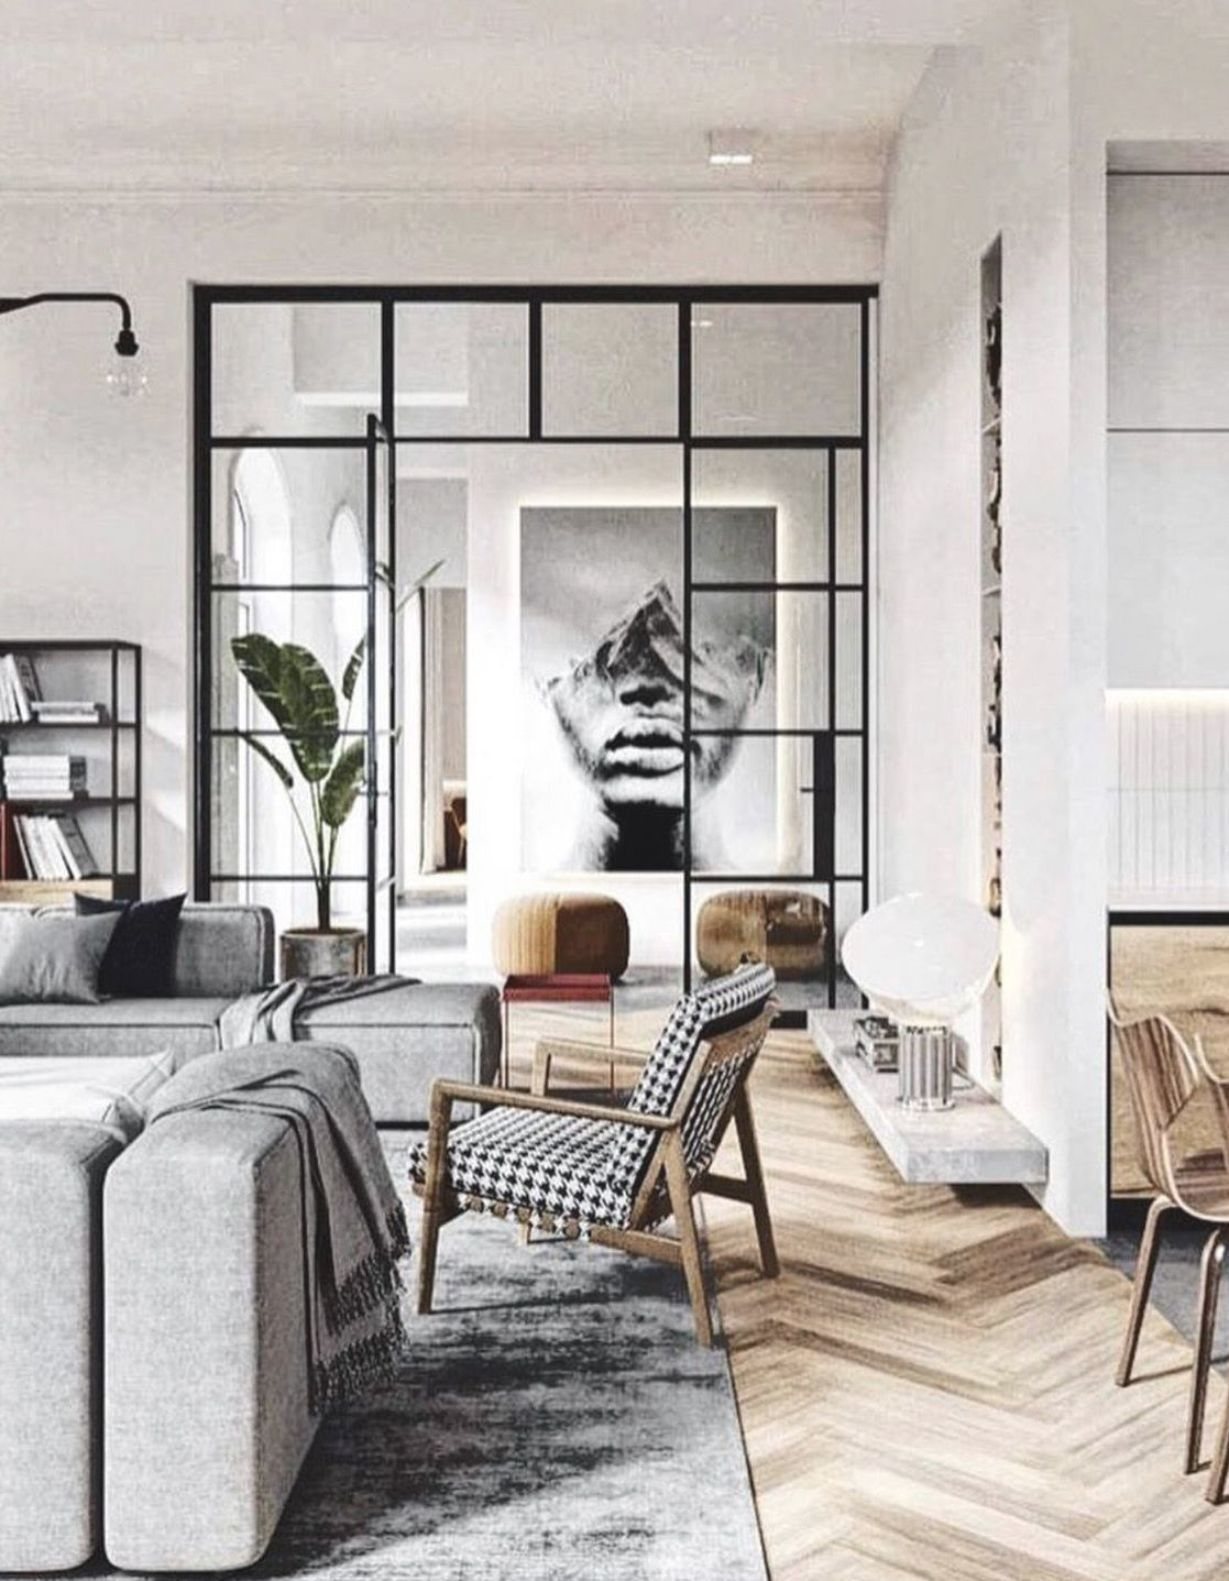 Add the modern decor touch to your home interior design project! This Scandinavian home decor might just be what your home decor ideas is needing right now!  #luxury #interiordesign #modernhomedecor #midcenturylighting #uniquedesignideas #homedecor #interiordesignideas #livingroomdesign #livingroomideas #modernlivingroom